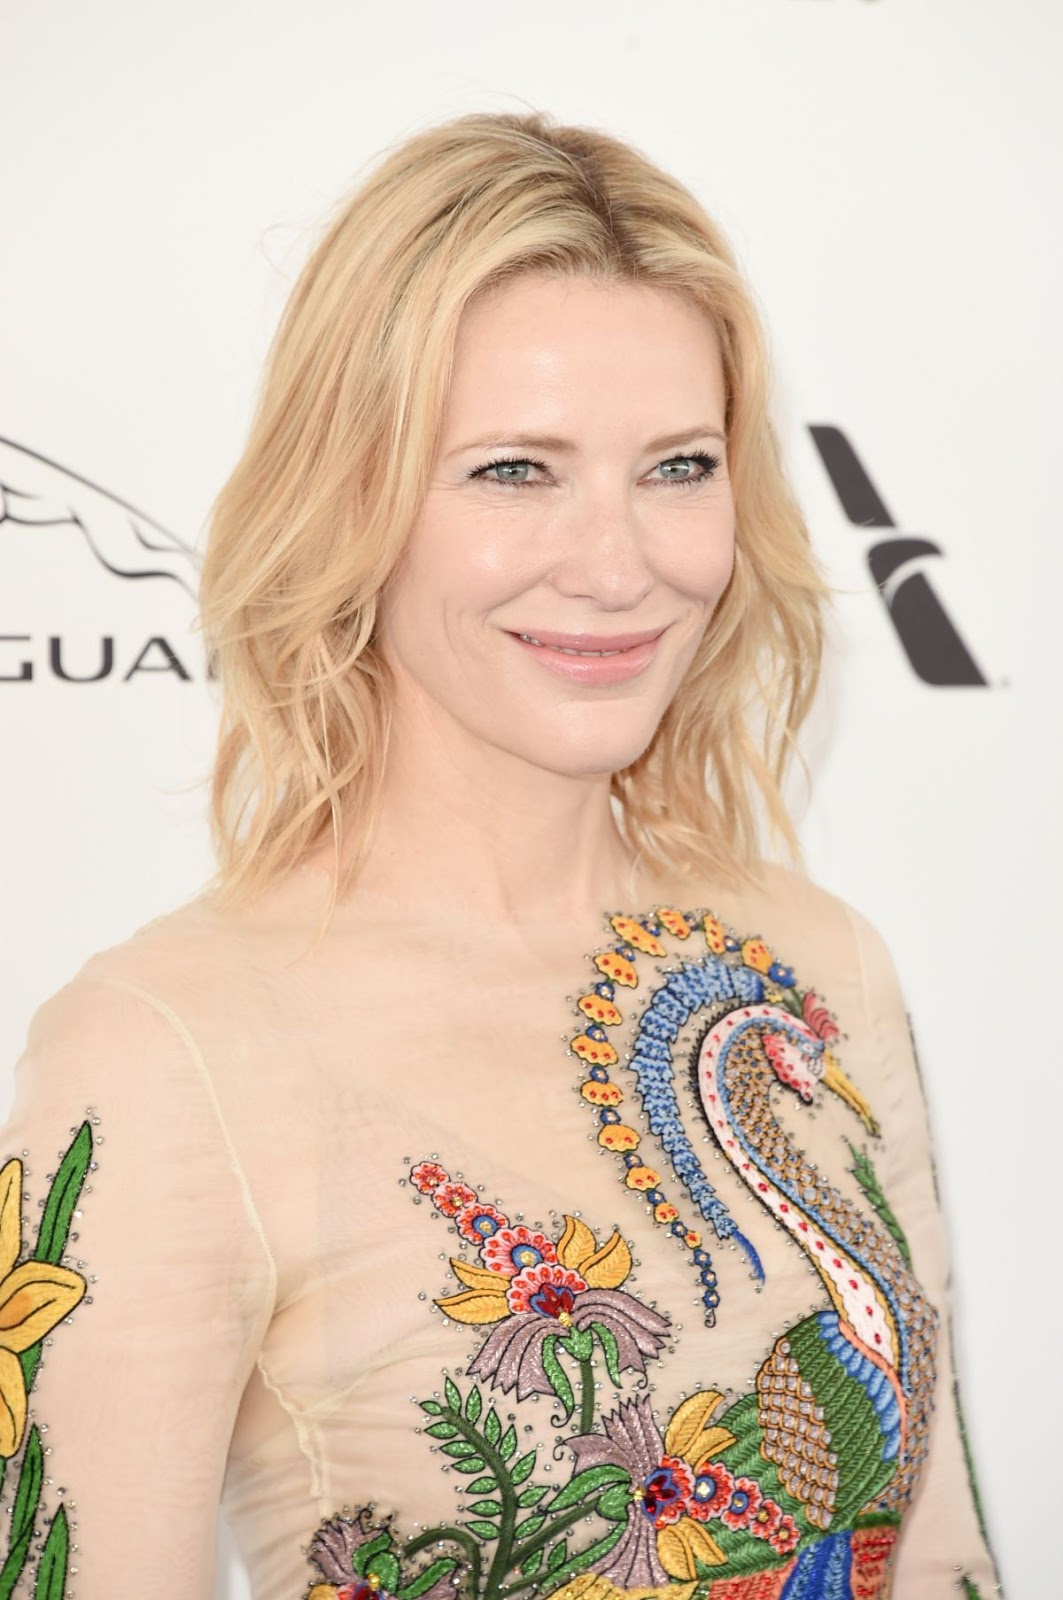 Manifesto actress Cate Blanchett at Film Independent Spirit Awards in Santa Monica